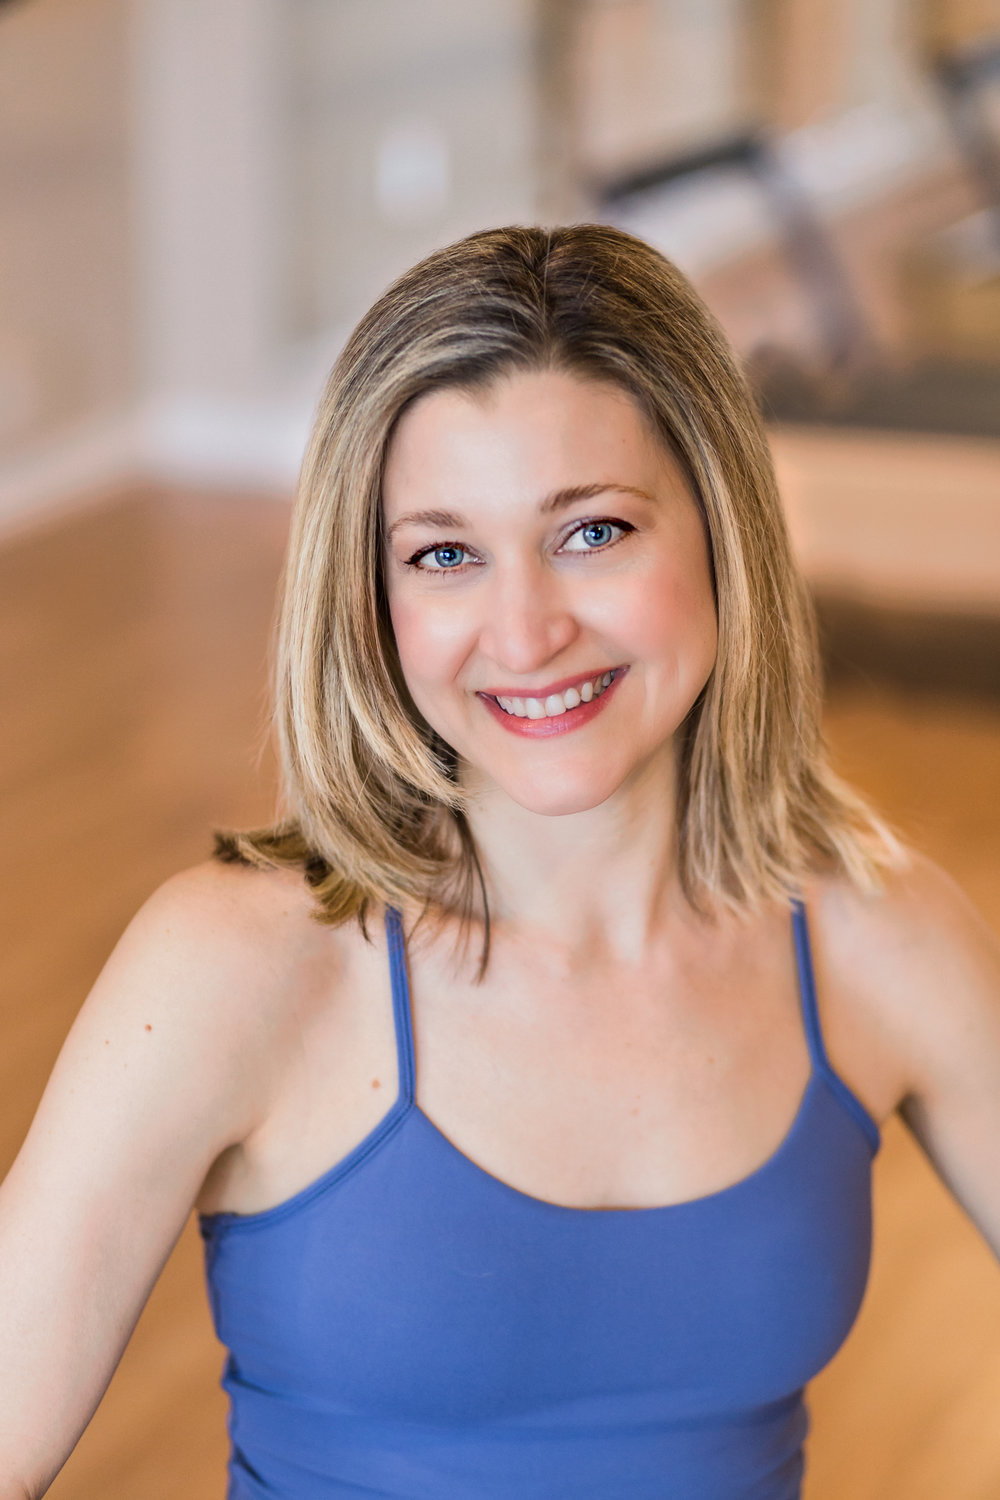 About Stephanie - I'm a Master Pilates Instructor, ELDOA practitioner, and exercise specialist who has a huge heart for anyone suffering with back pain. See, I'm also a former gymnast with several spinal fractures and disc injuries, so I can relate to chronic pain. The exercises I teach to my clients are a crucial part of keeping my own body healthy and pain-free.My philosophyMy guiding principle is that exercise really does not have to be extreme to work magnificently. I curate specialty back pain programs to meet my clients' unique needs. It's my passion to design a simple program that can not only eliminate your back pain but also get you well on your way to a fitter body and a more vibrant life.